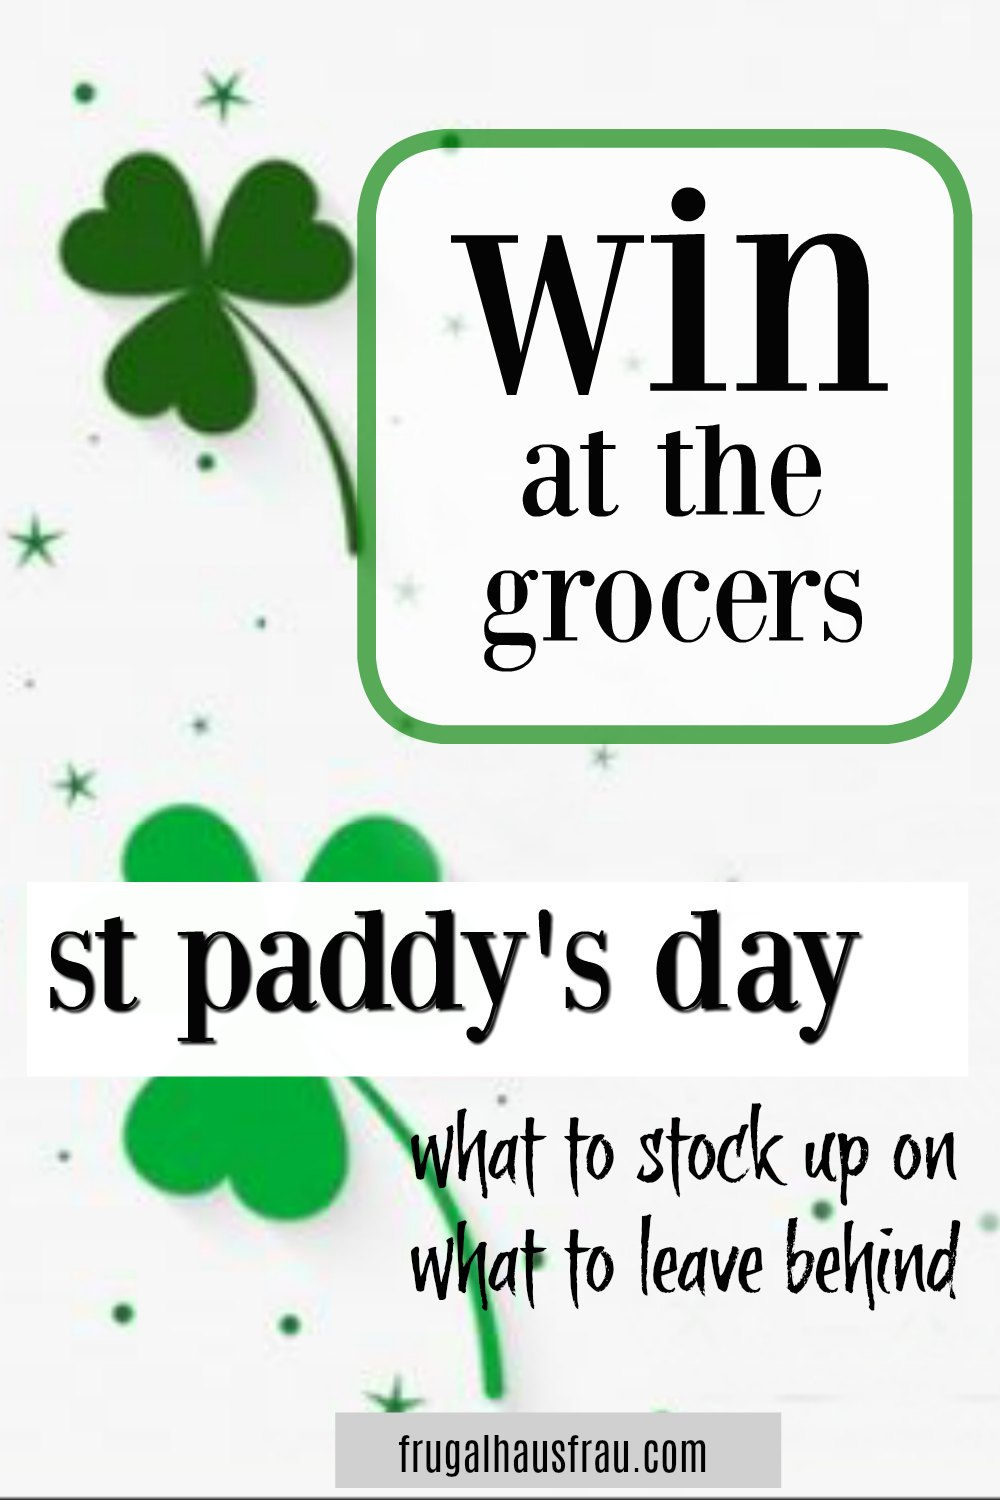 St. Patrick's Day Grocery Savings - Even if you're not Irish, you'll be a fan of the sales once you learn to leverage those savings to your advantage! See what's likely to be on sale (it's not just party food) when it might be at a great price again, and get an idea of how much you should buy, what to avoid and how to save the most money on these items! #HolidayGrocerySales #SaveMoneyOnGroceries #HowToBuySmart #SaveMoneyOnGroceriesStPaddysDay #SaveMoneyStPaddys